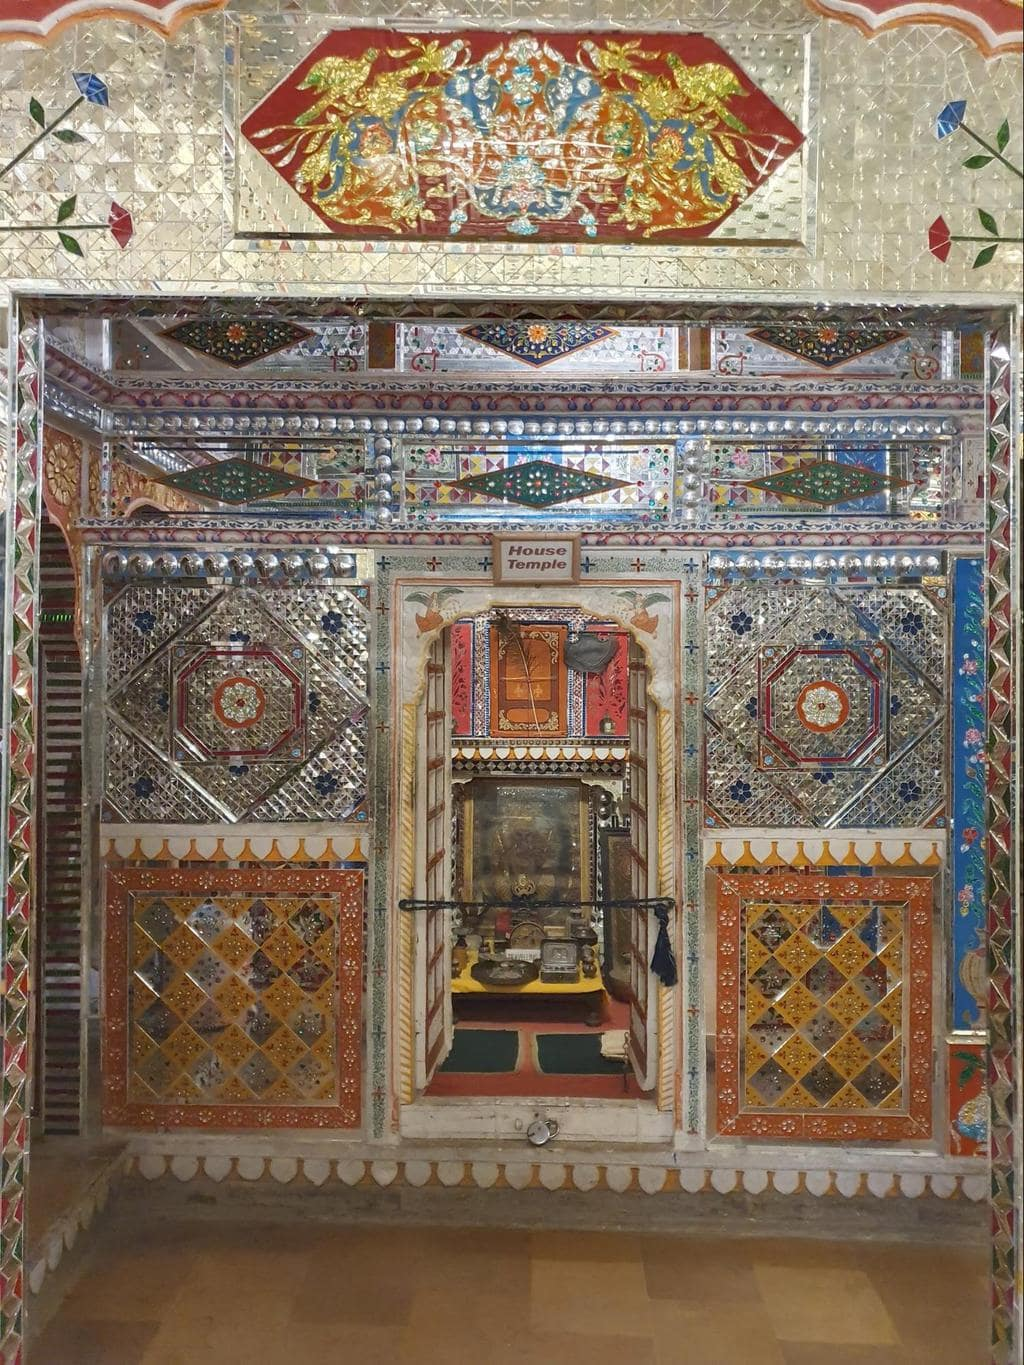 The intricate interiors of Patwon Ki Haveli Temple